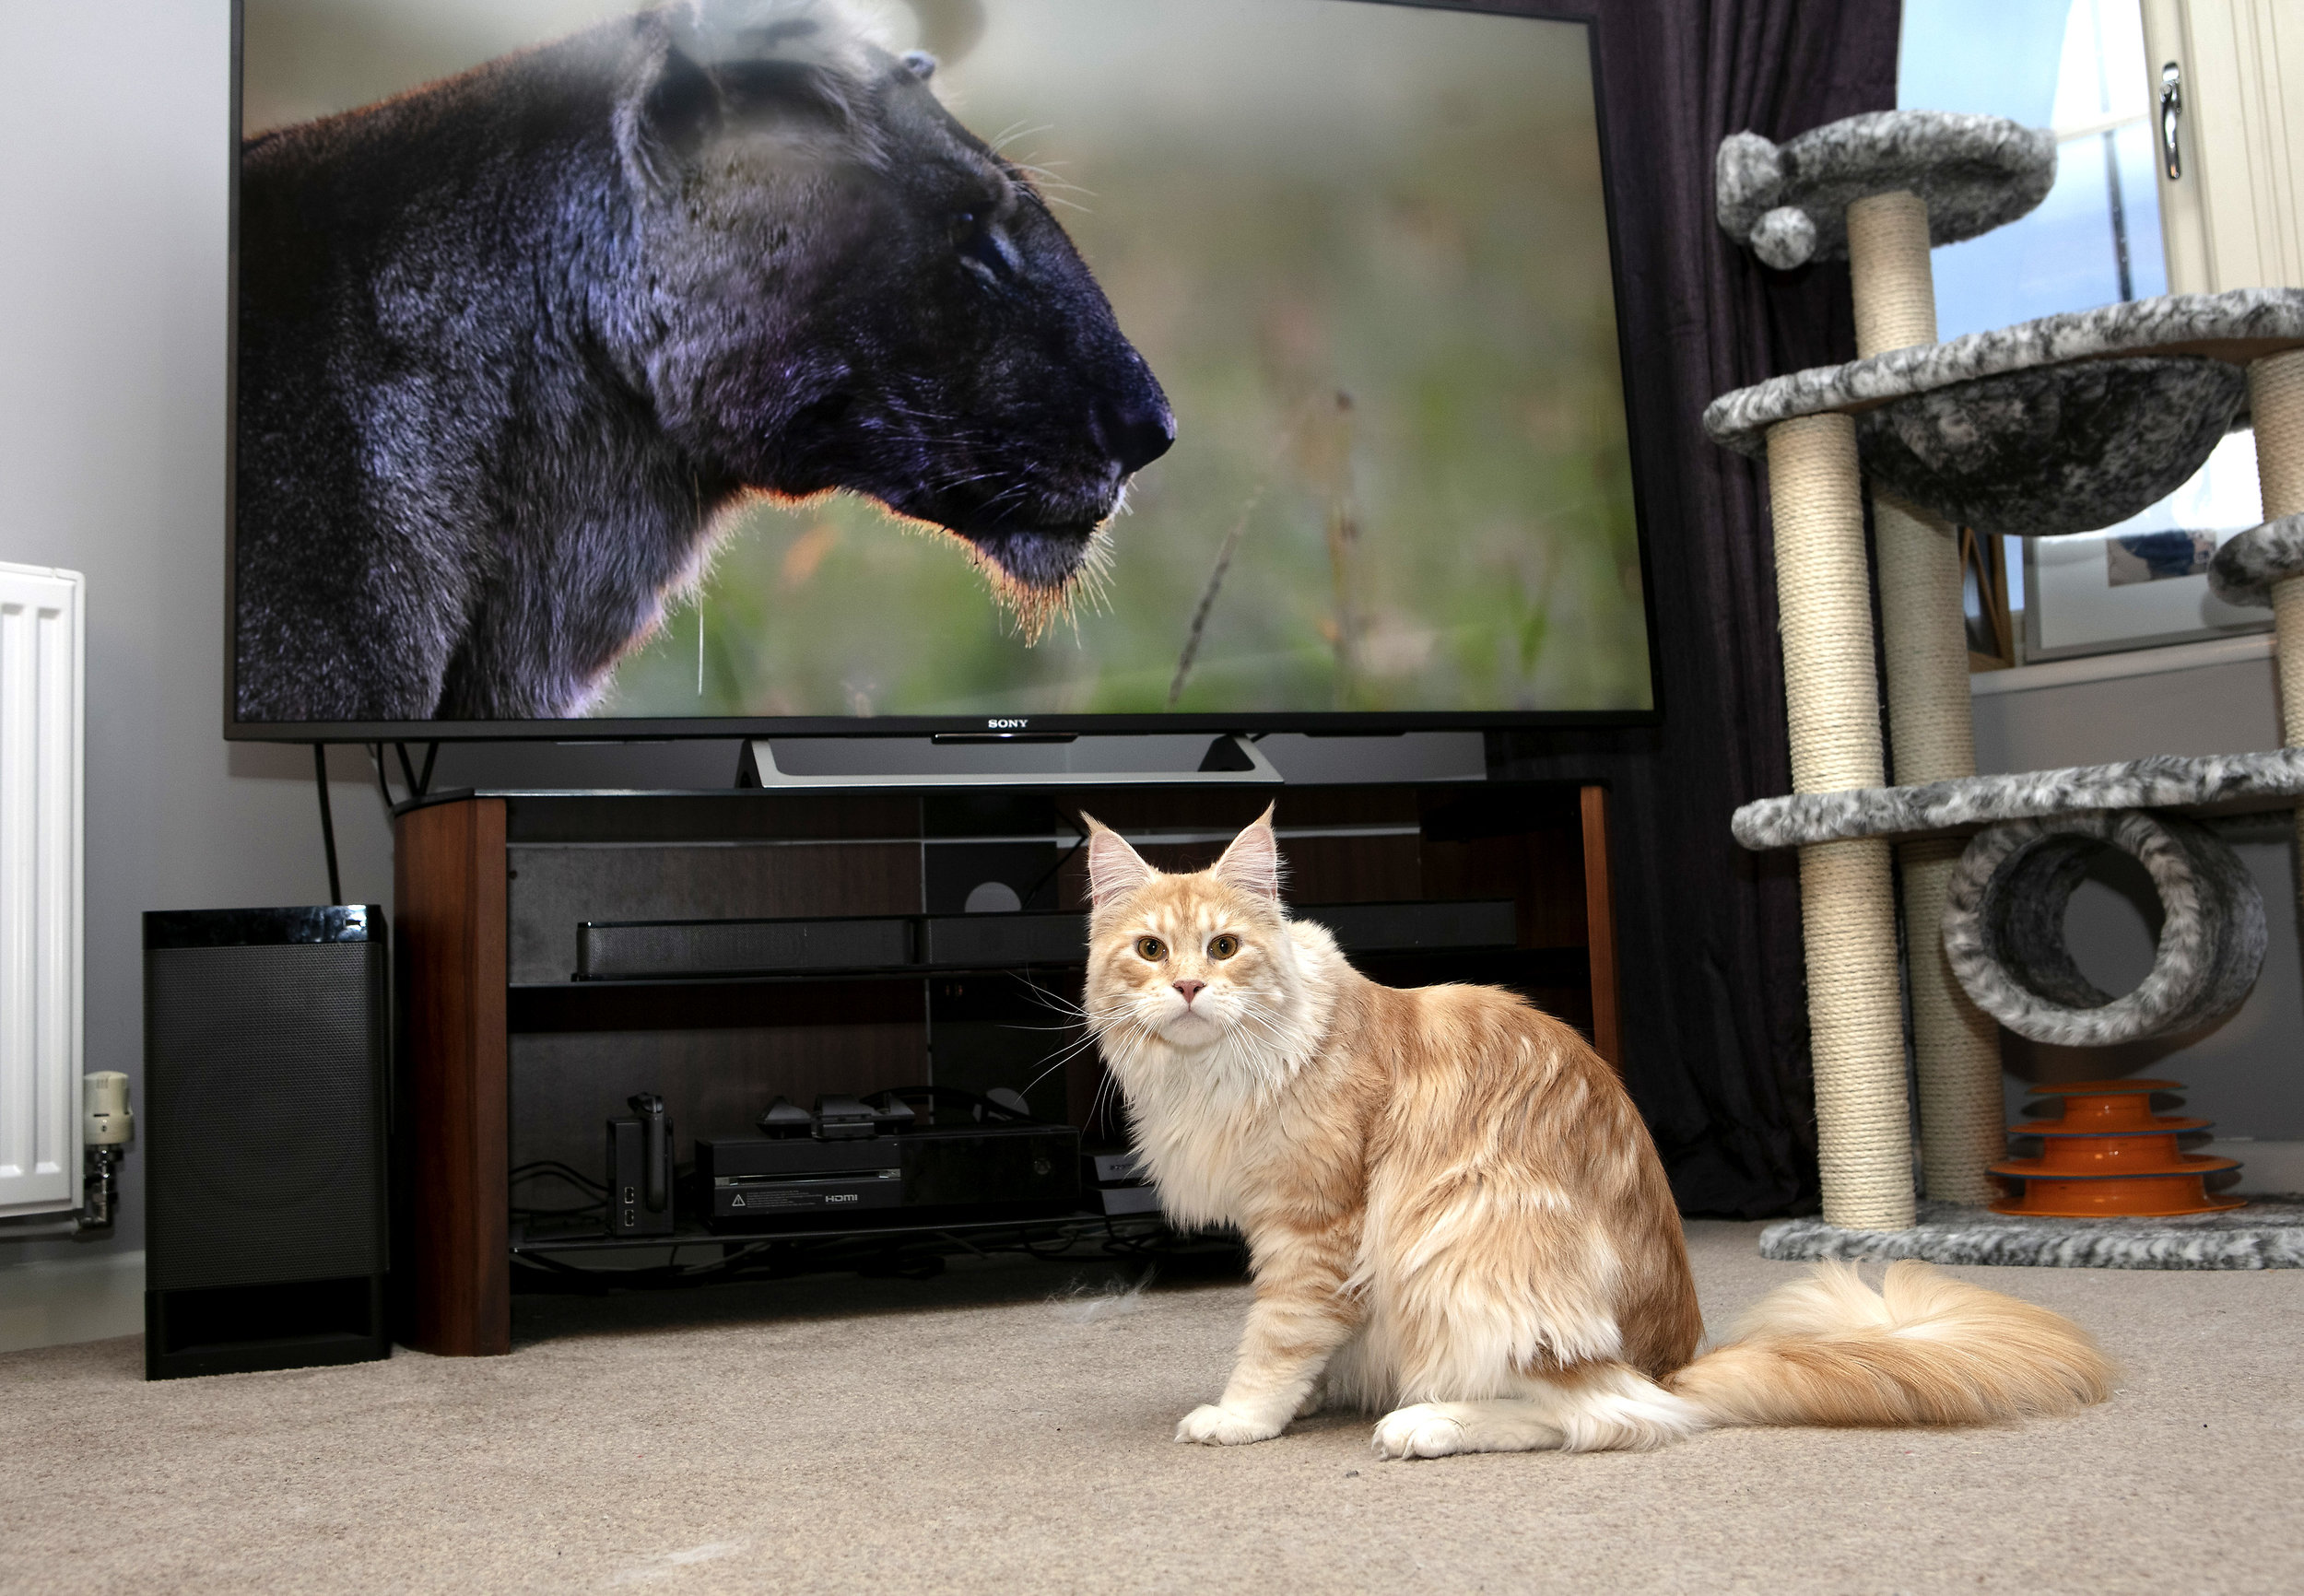 https://www.dailymail.co.uk/femail/article-6477343/New-HD-TVs-twice-powerful-used-mean-pets-FINALLY-watch-telly.html